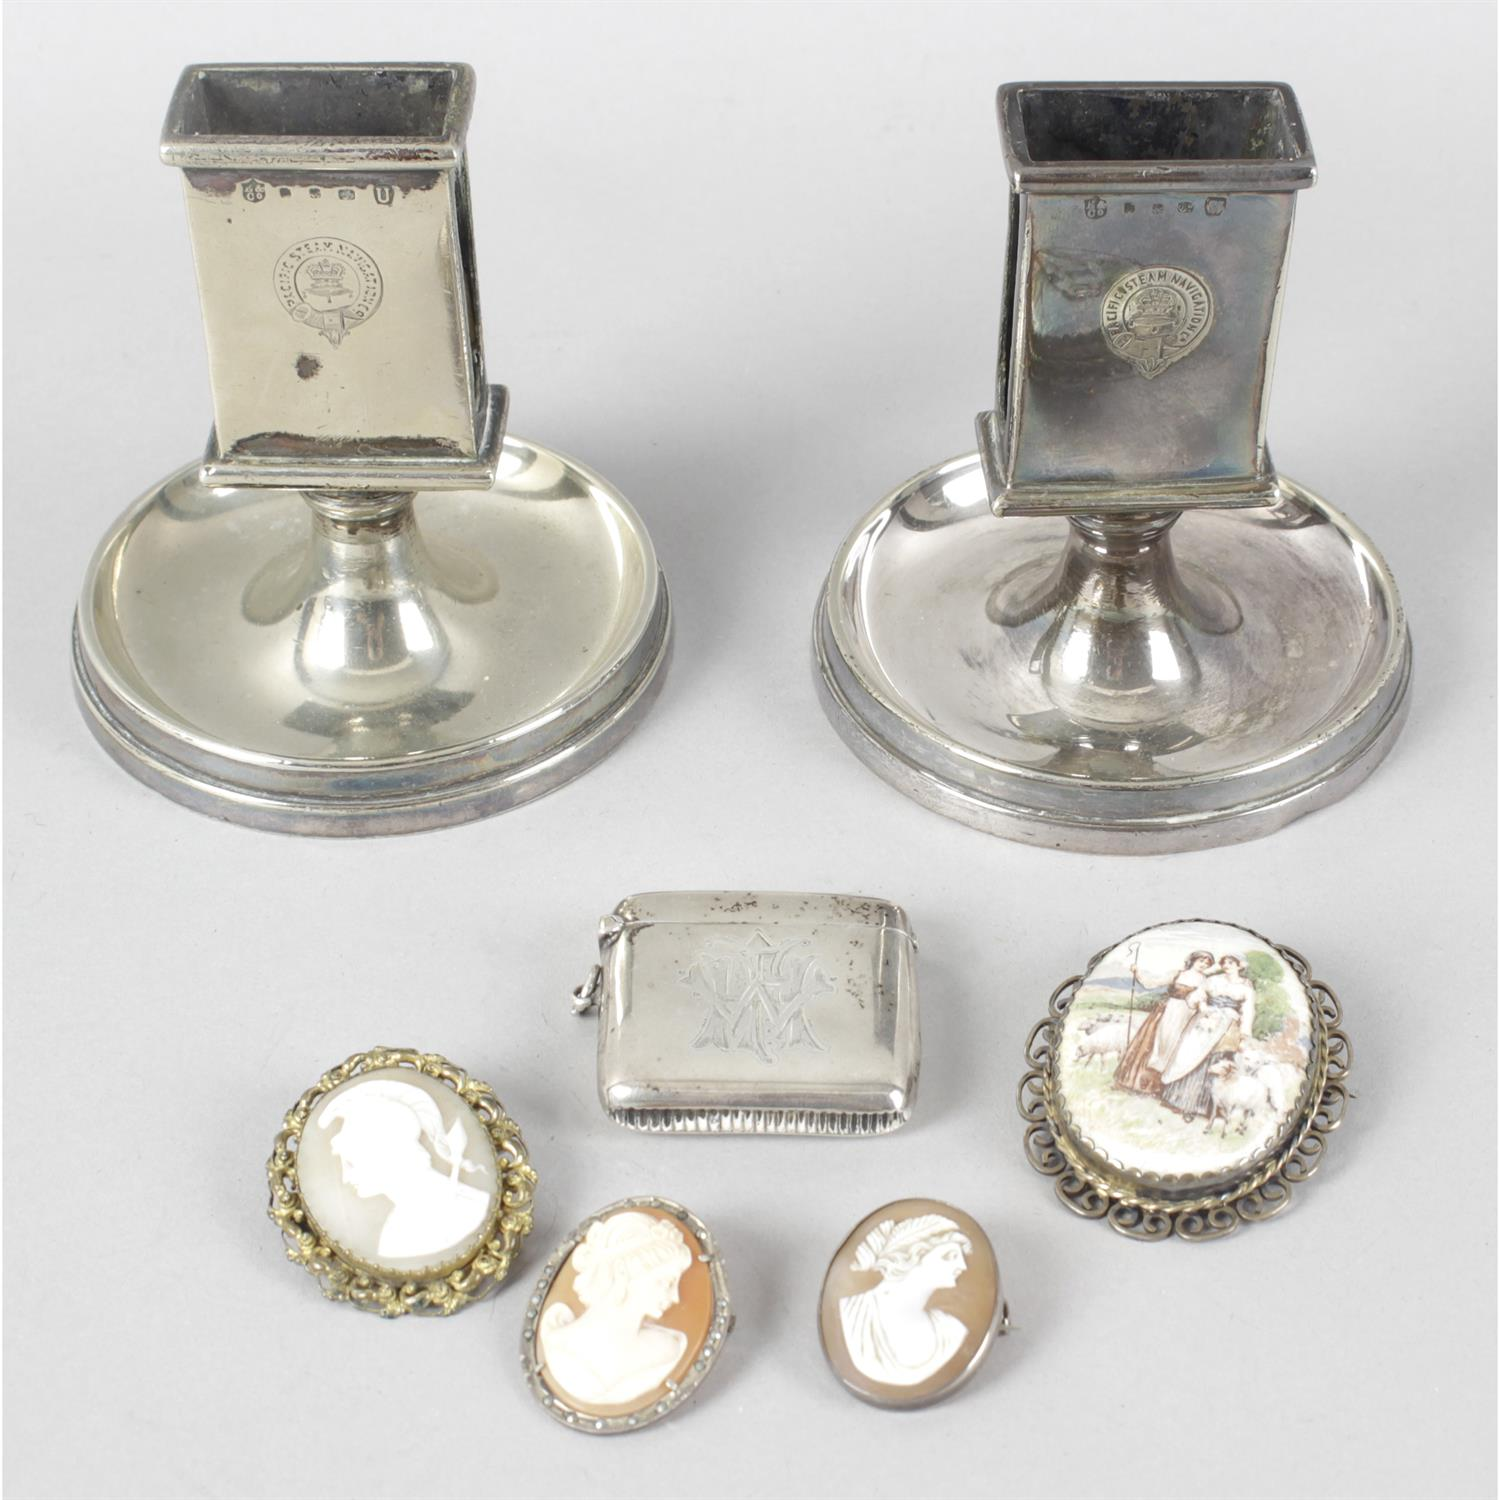 A mixed selection of items to include Pacific Steam Navigation matchbox holders, costume jewellery,